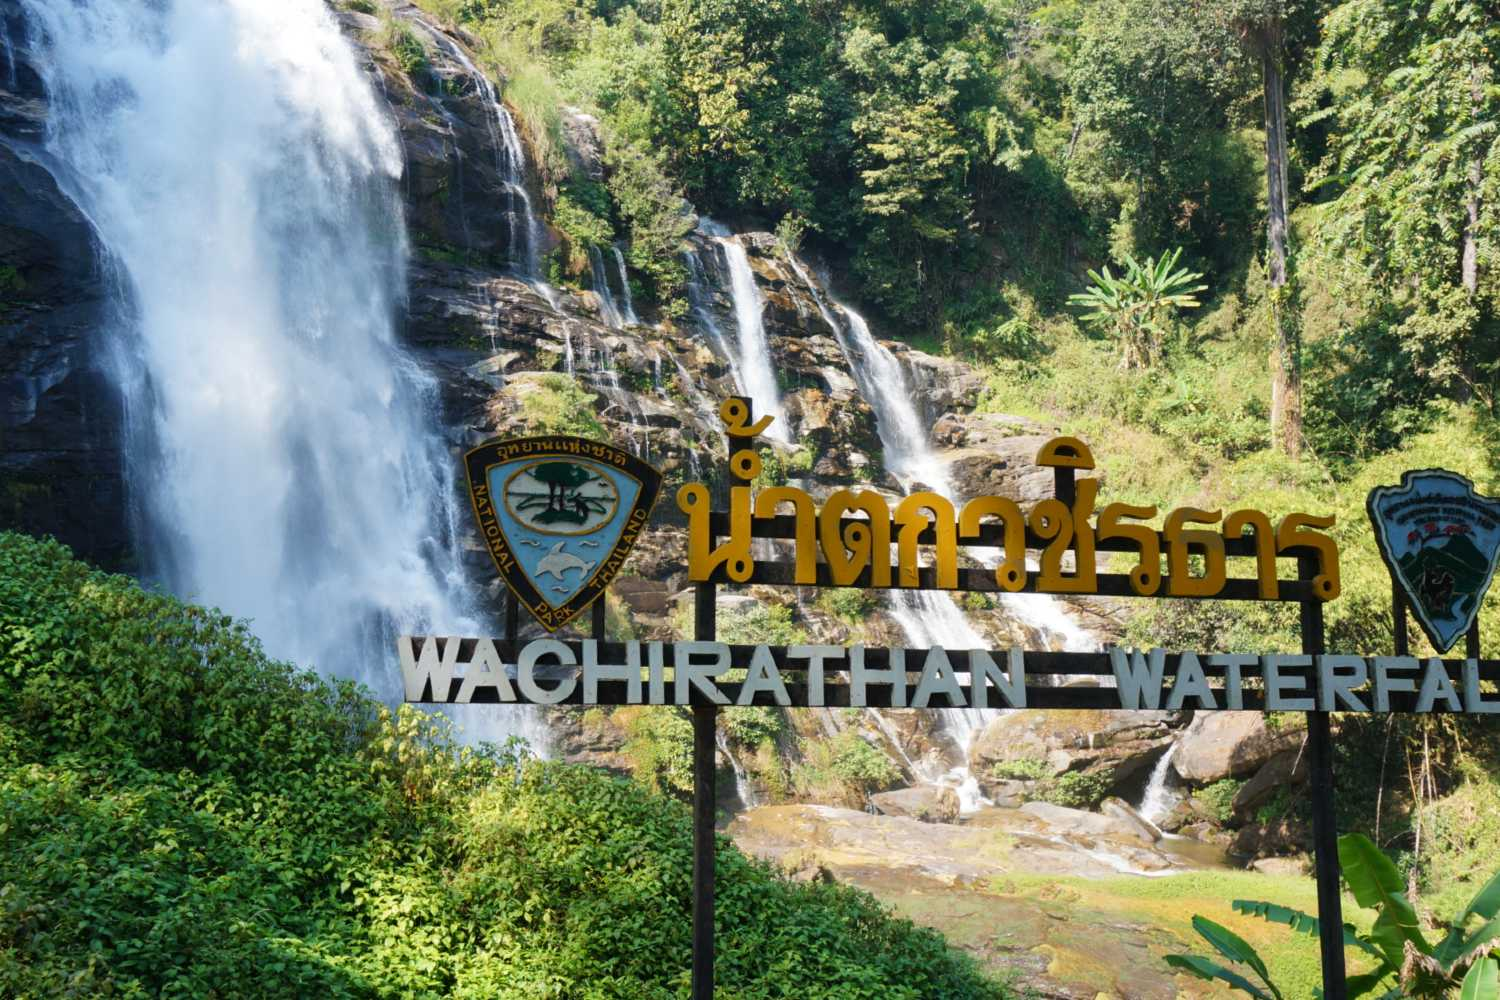 Wachirathan Waterval in het Doi Inthanon National Park vlakbij Chiang Mai